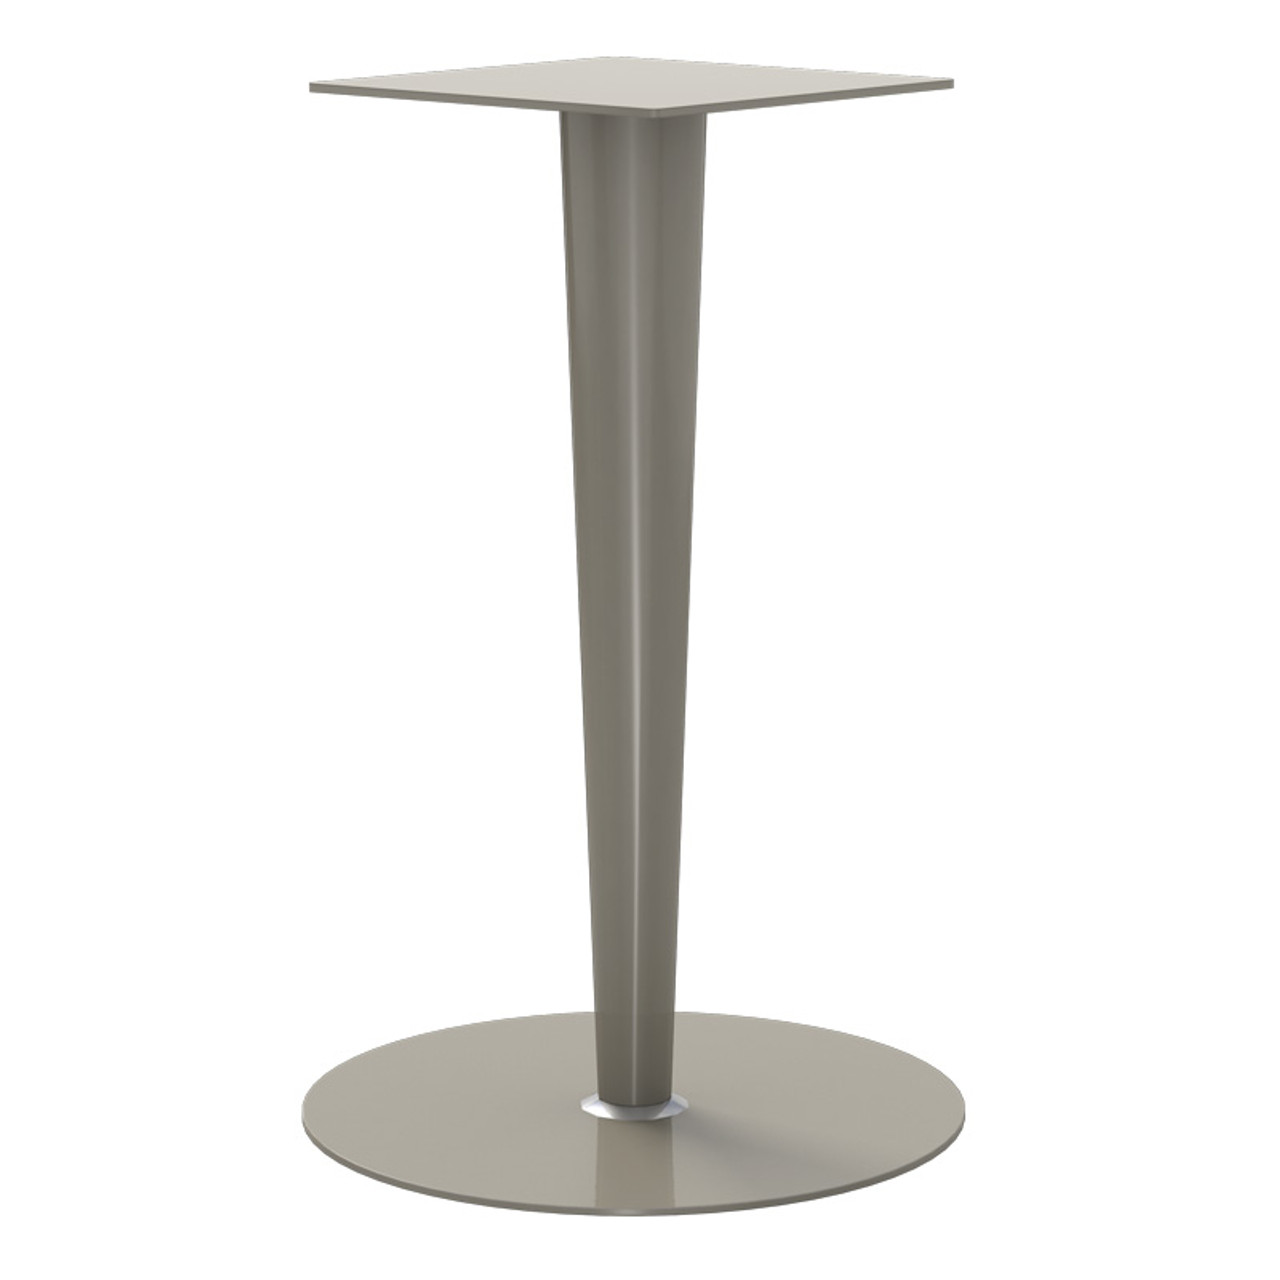 "Tapered Pedestal Base, 27-3/4"" Height, 23-3/4"" Base Diameter, 4""-2"" diameter Column - Replacementtablelegs.com"